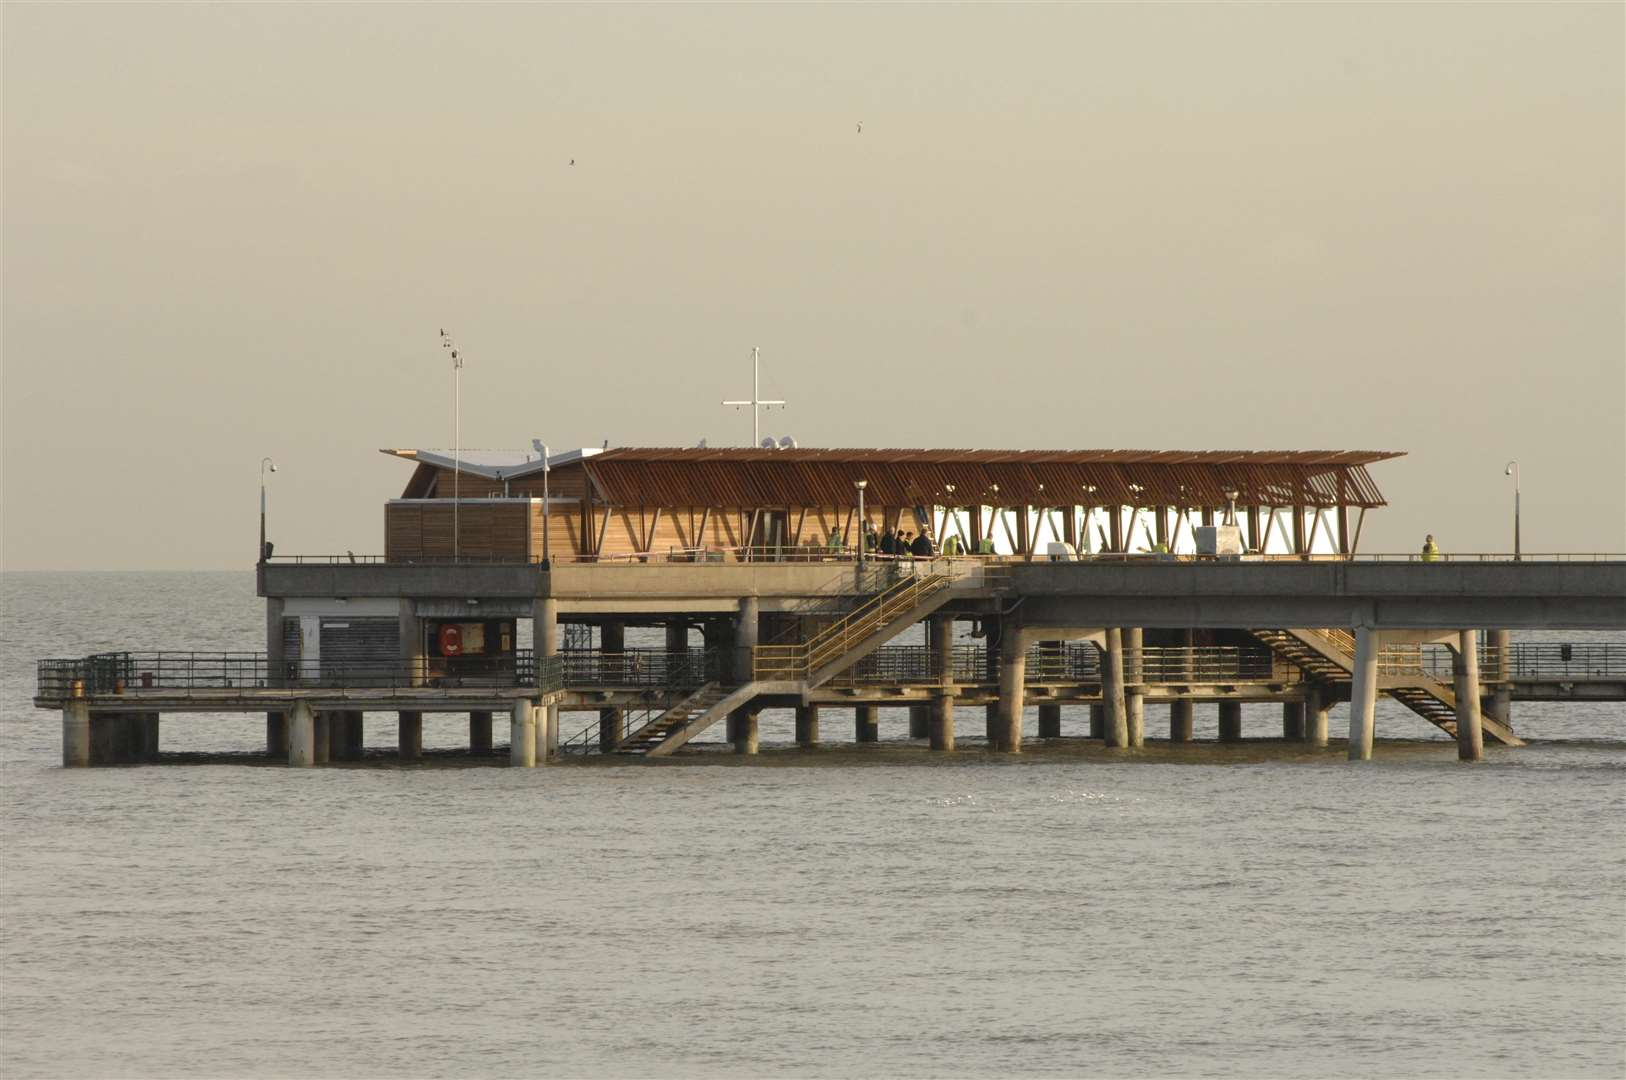 The café on Deal Pier is set to reopen as Deal Pier Kitchen